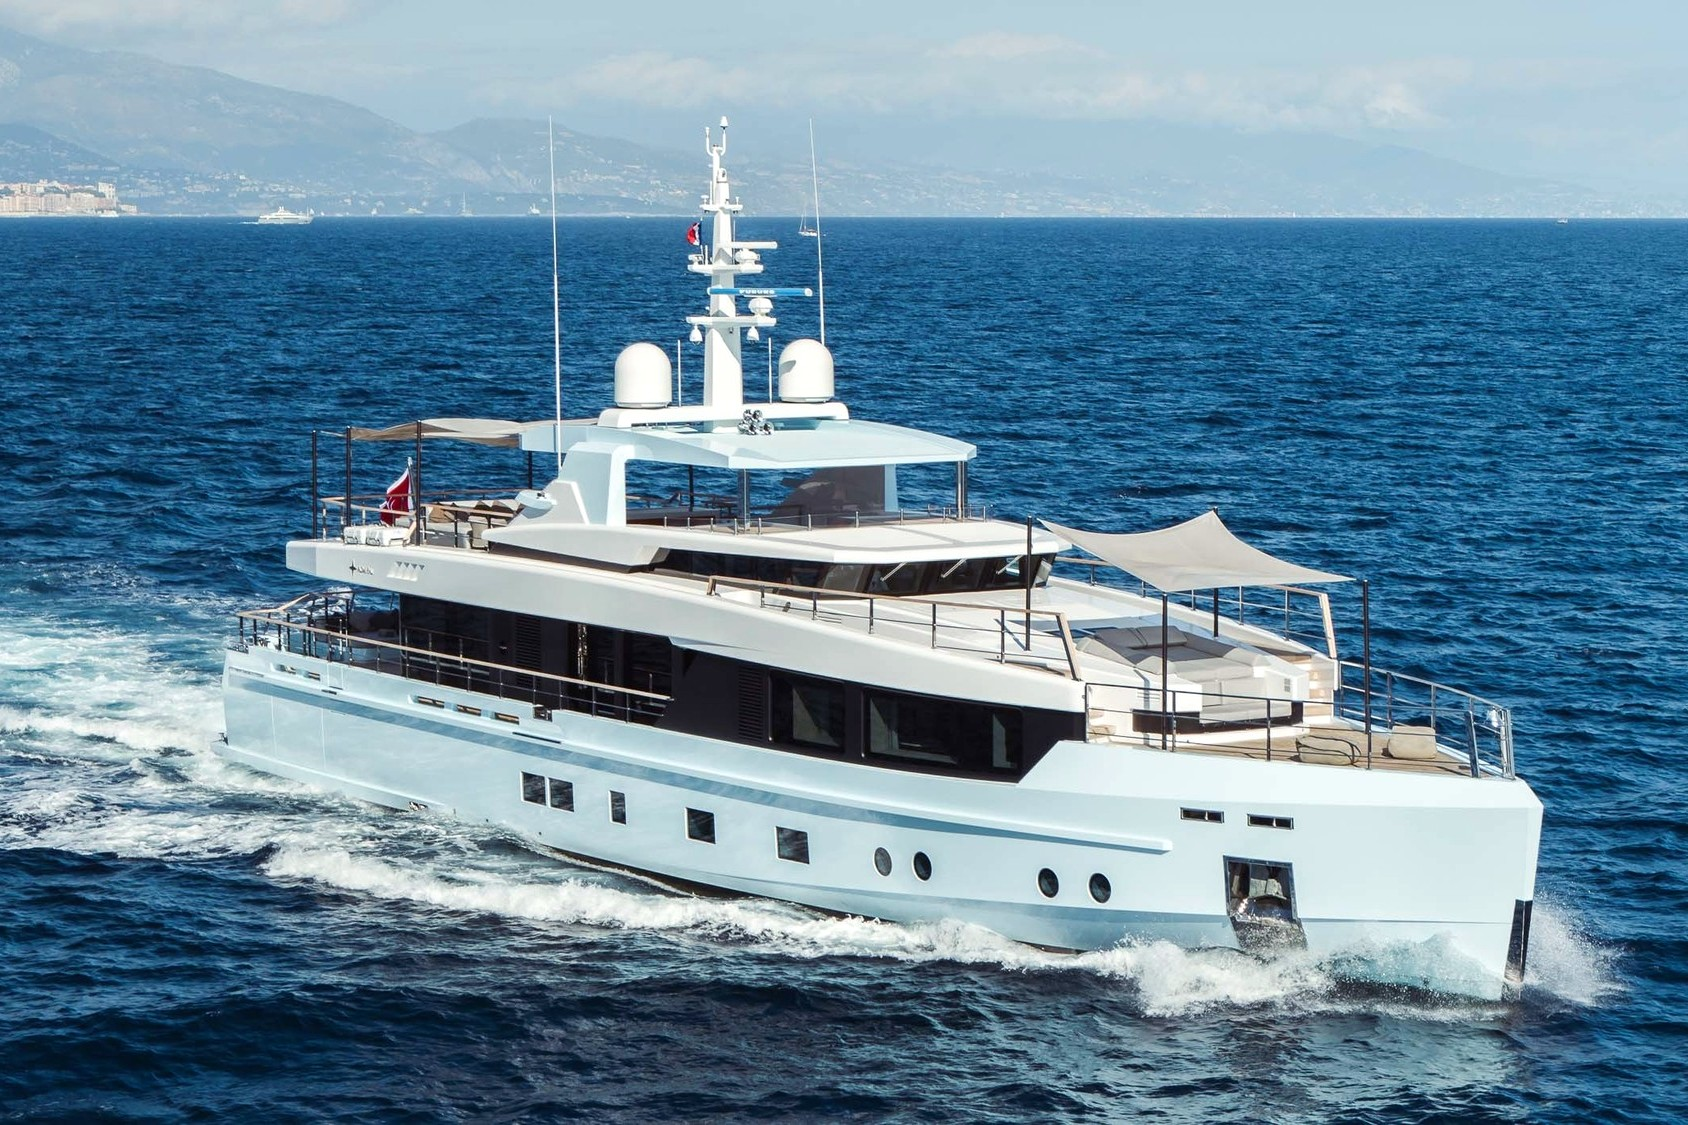 The most expensive Heesen superyacht's cost